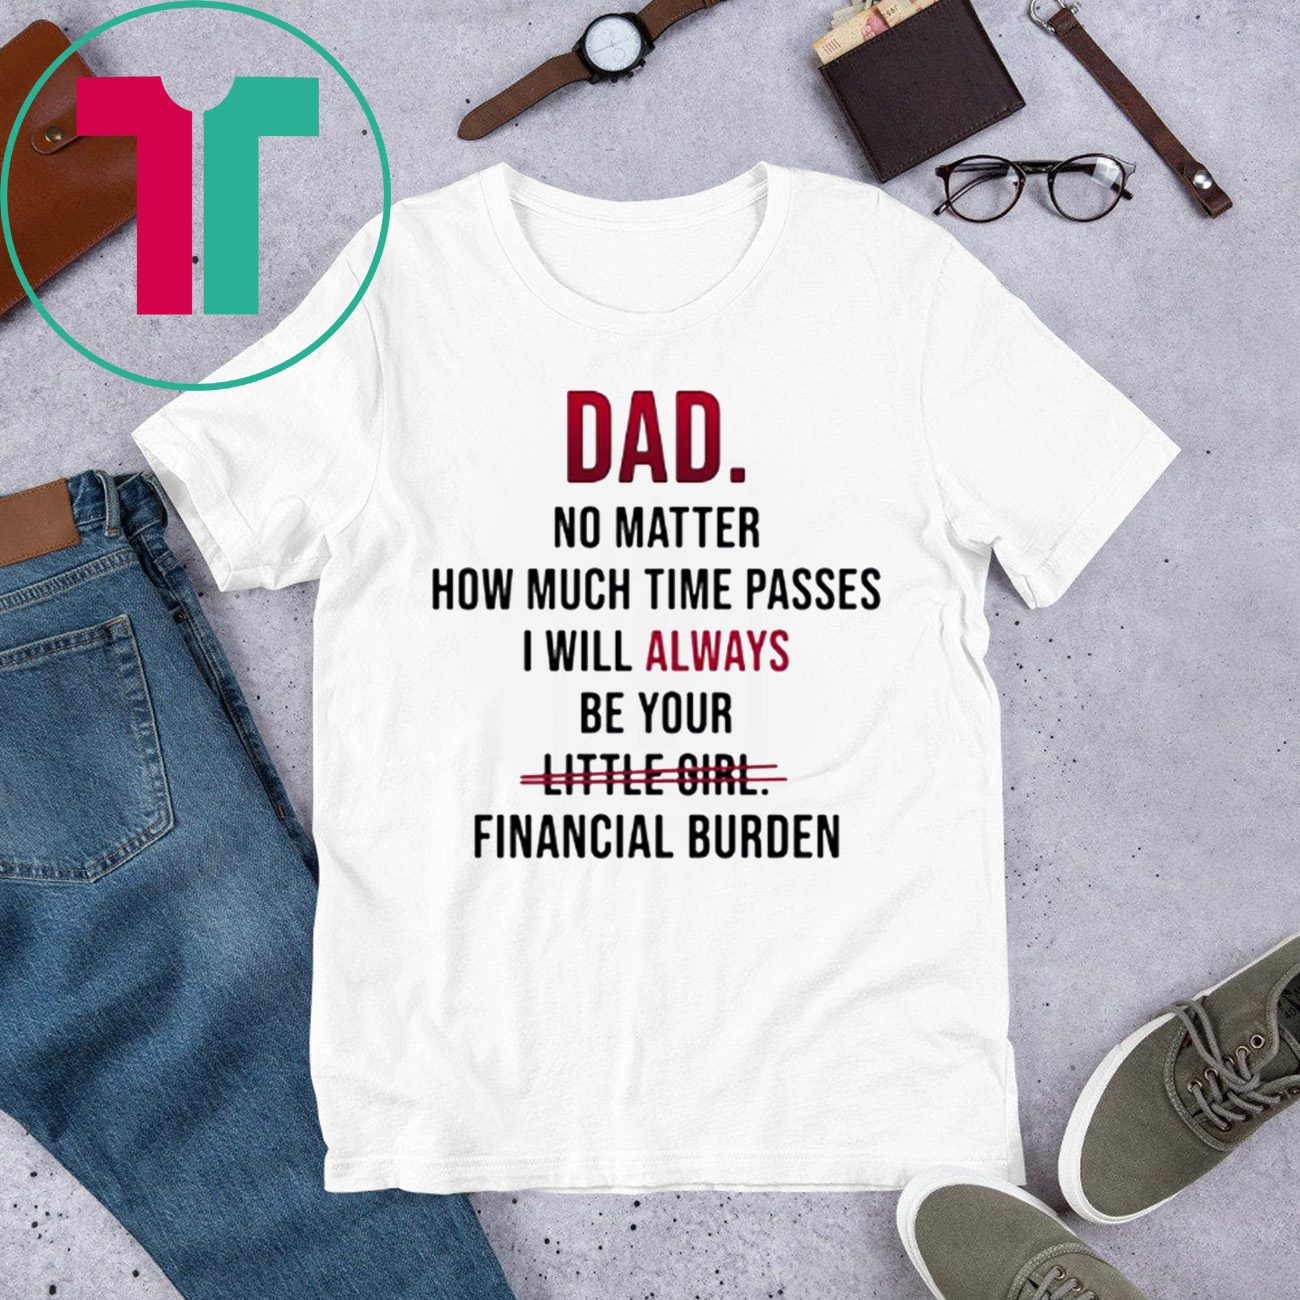 Dad no matter how much time passes i will always be your little girl financial burden t-shirt